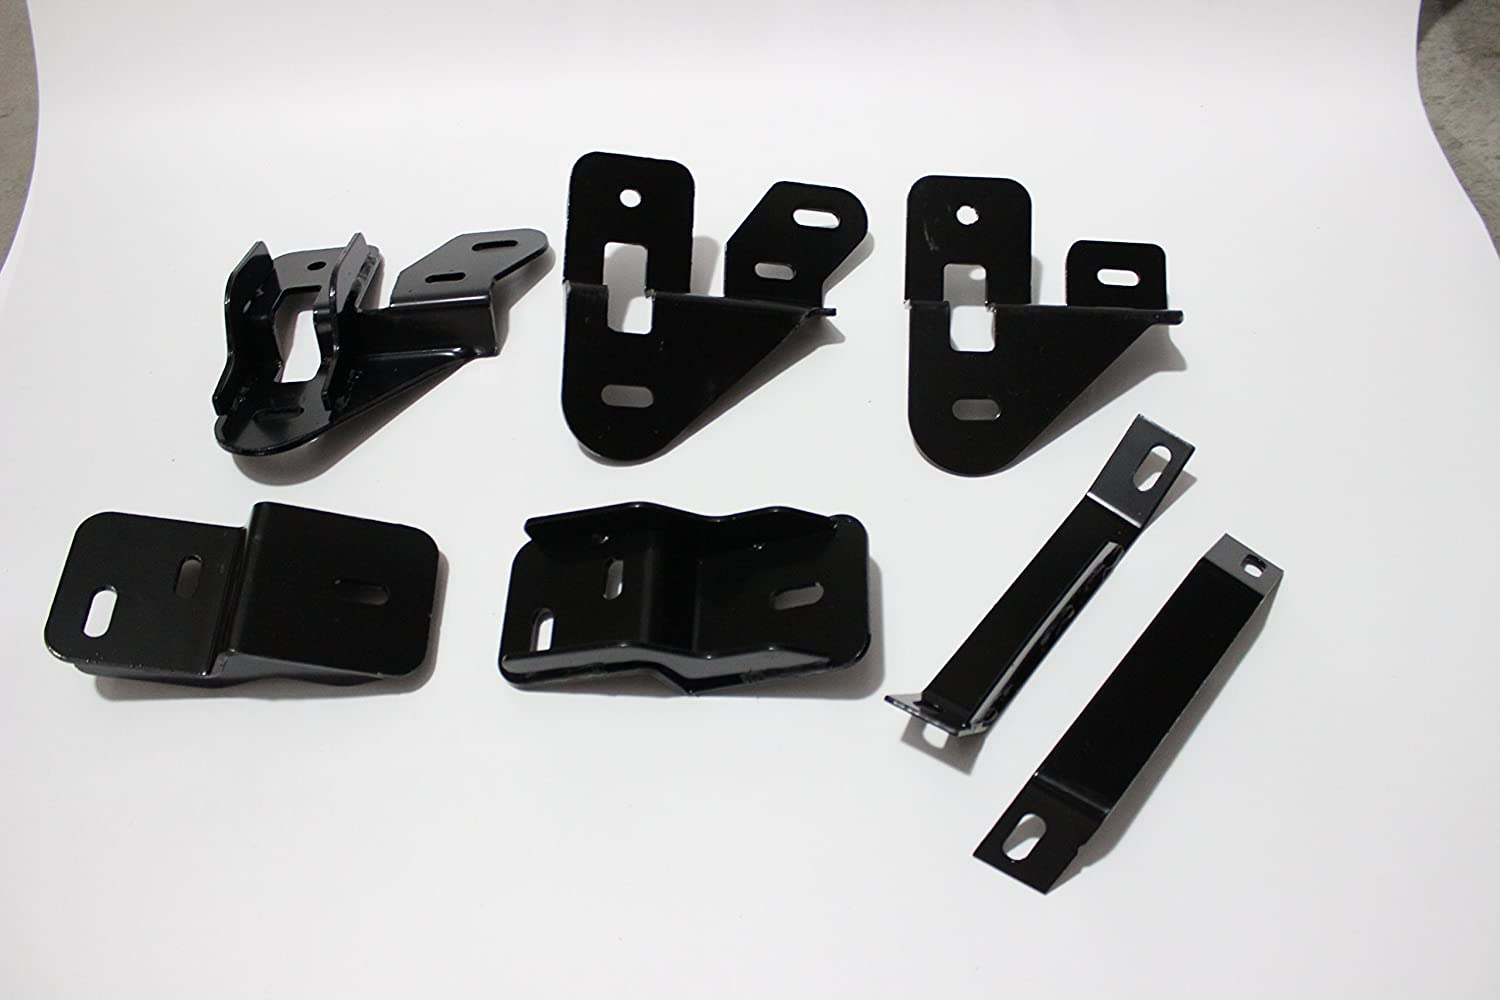 Mifeier 3 Black Nerf Bars Running Boards Fit 09-18 Dodge Ram 1500 Crew Cab with 4 Full Size Doors